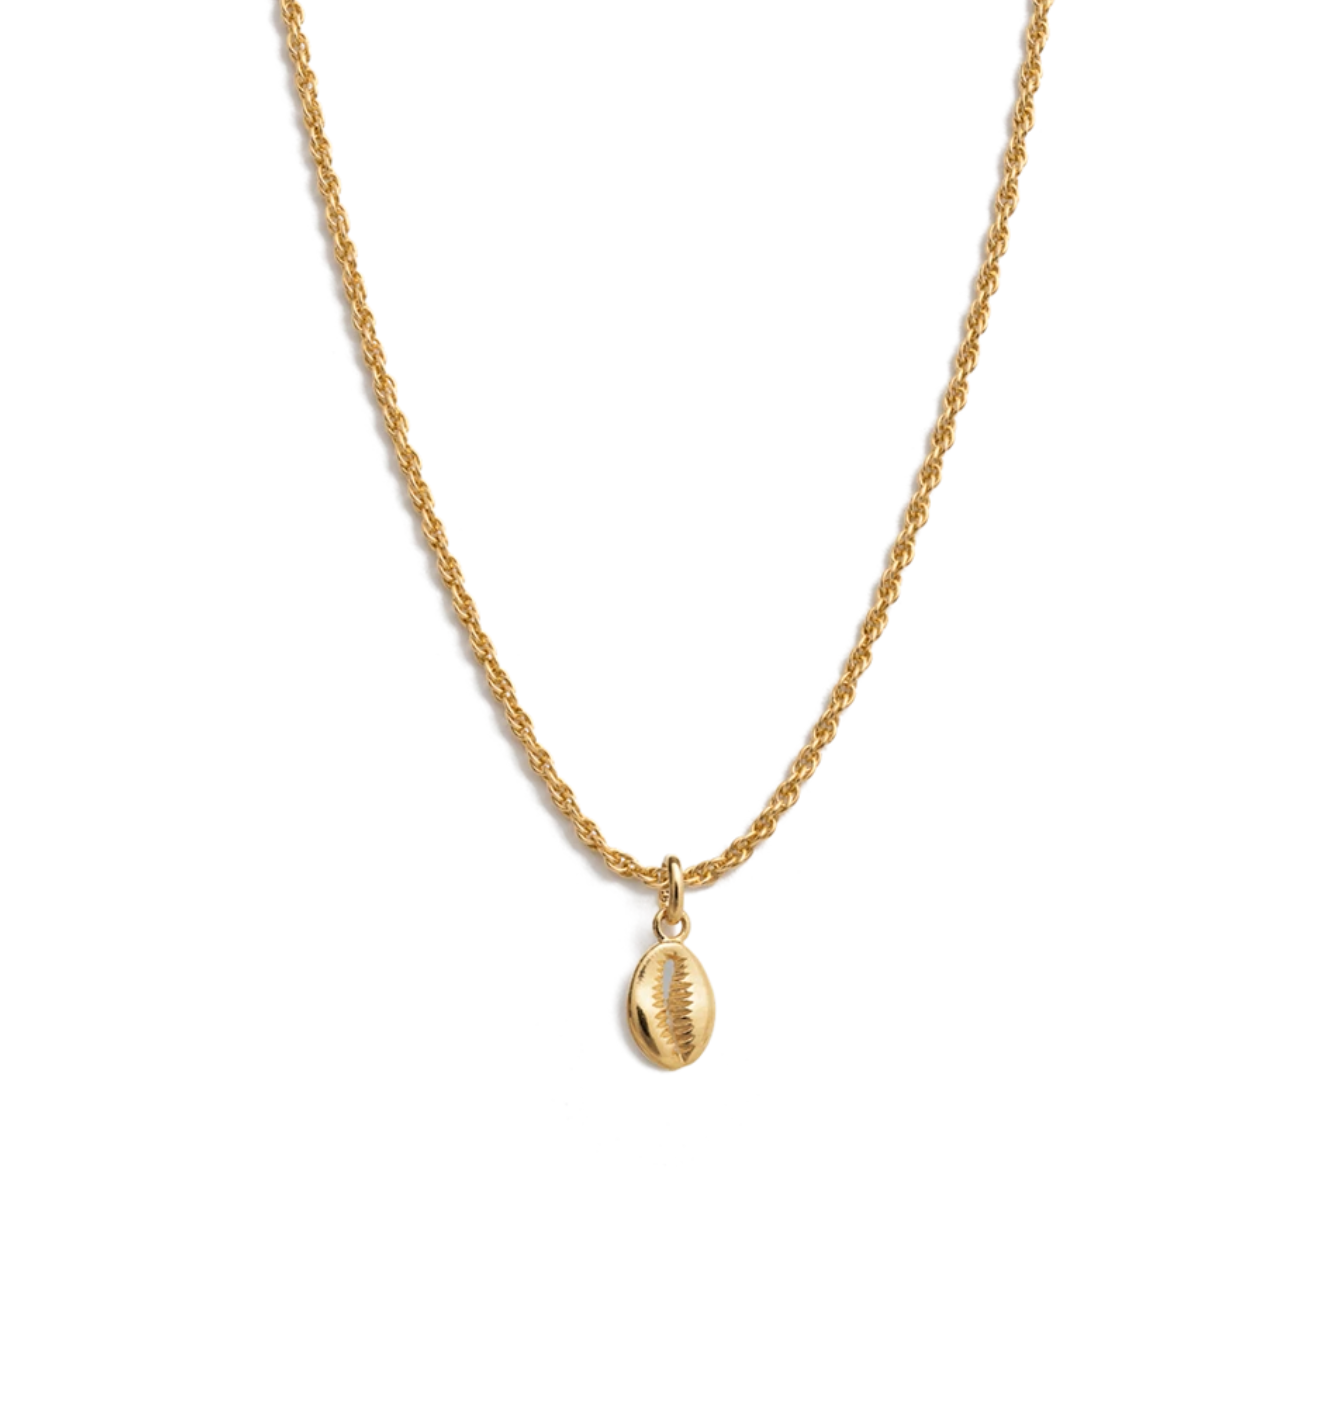 Kirstin Ash Cowrie Shell Charm Necklace - Gold